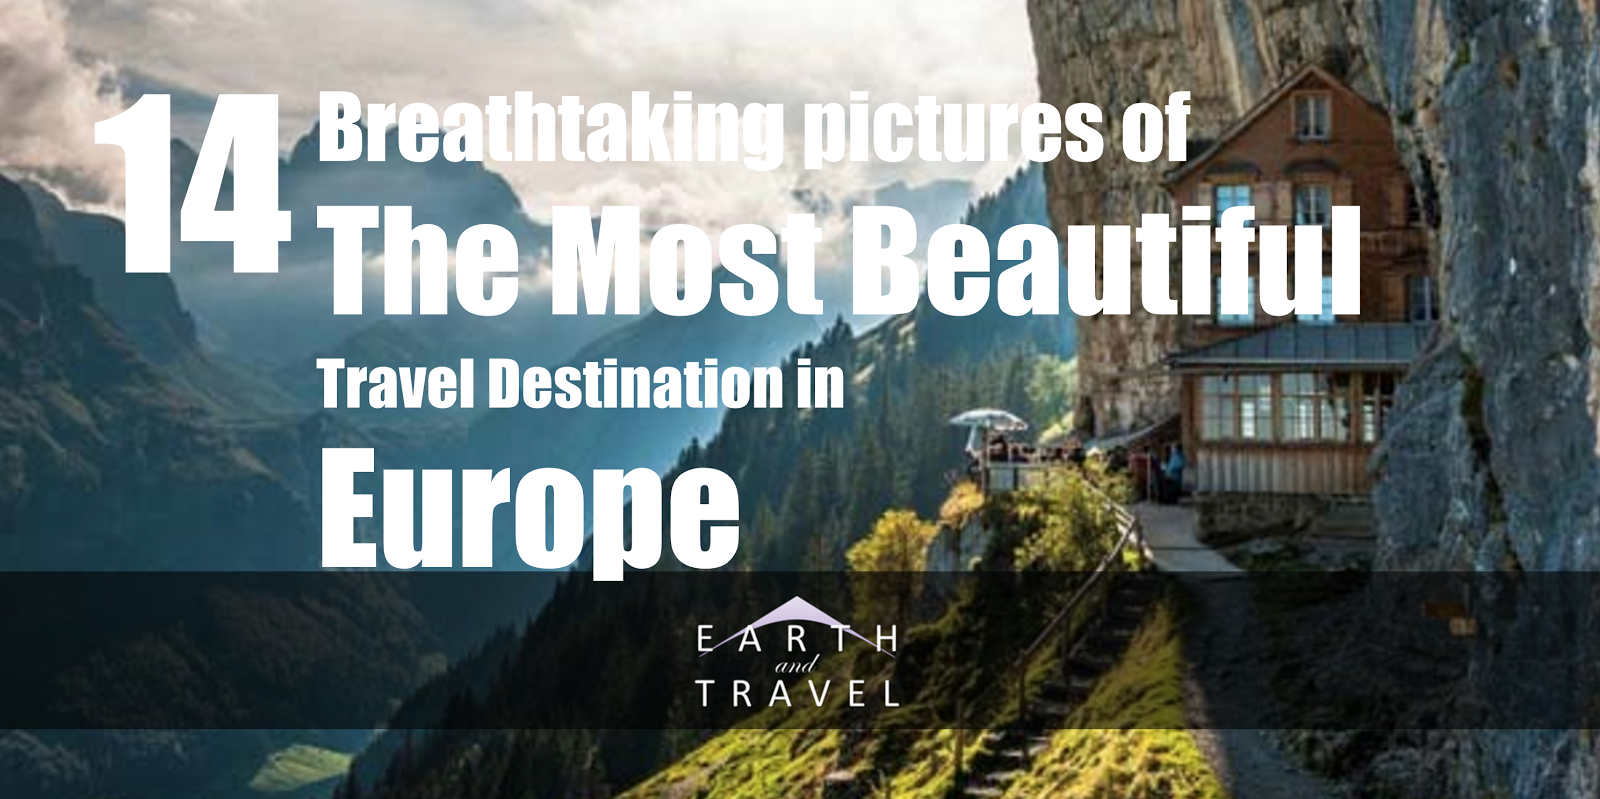 14 Breathtaking Photos of Travel Destinations in Europe